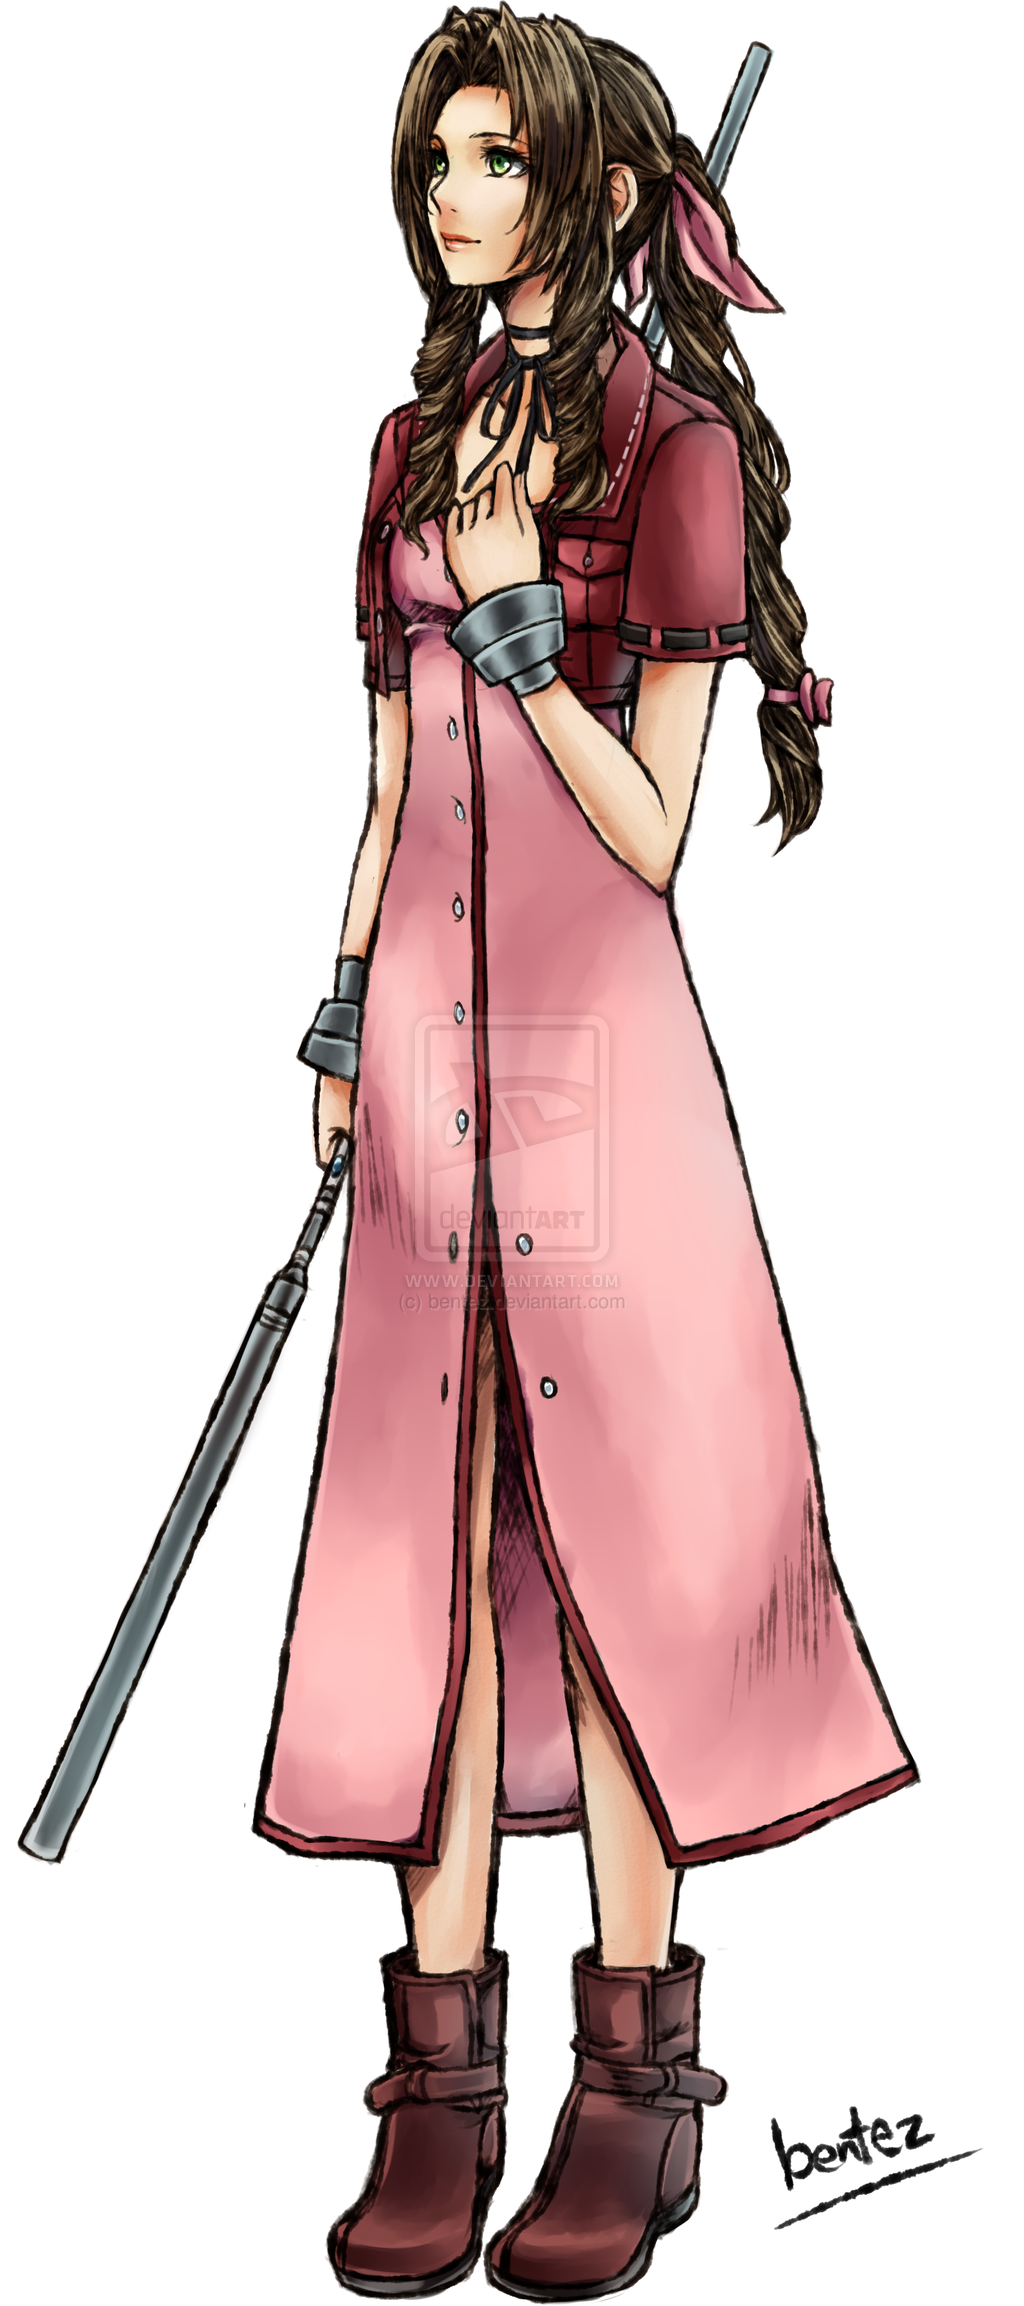 aerith gainsborough from ff7